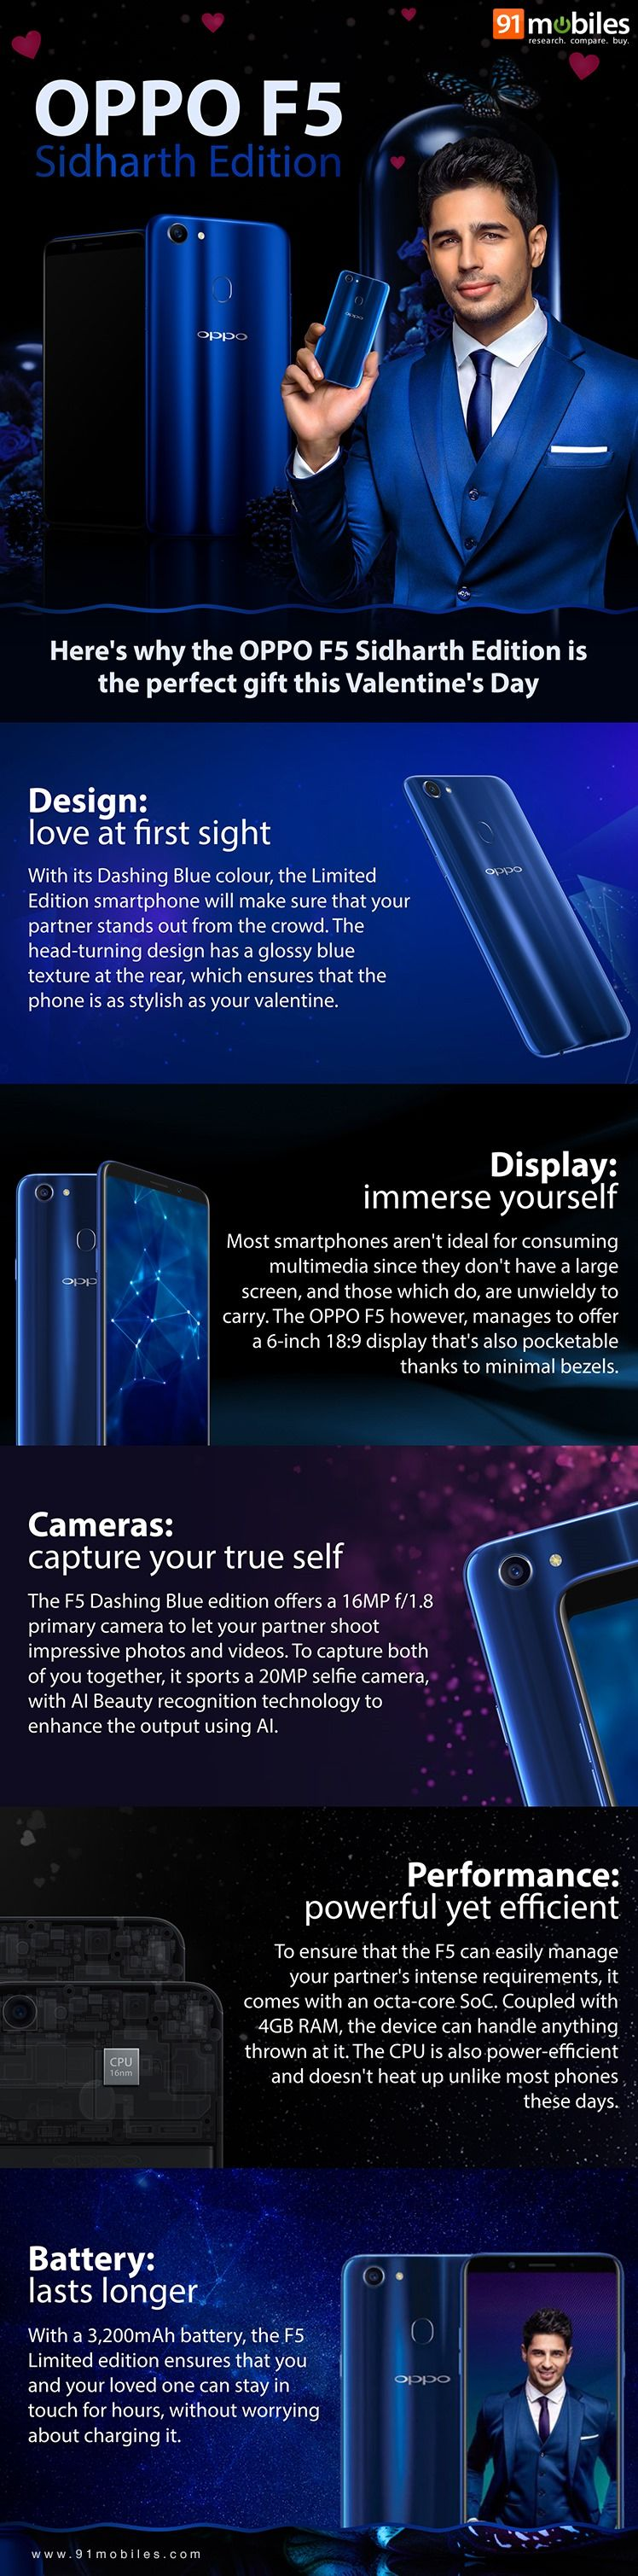 OPPO F5 Siddhart Edition infographic 91mobiles